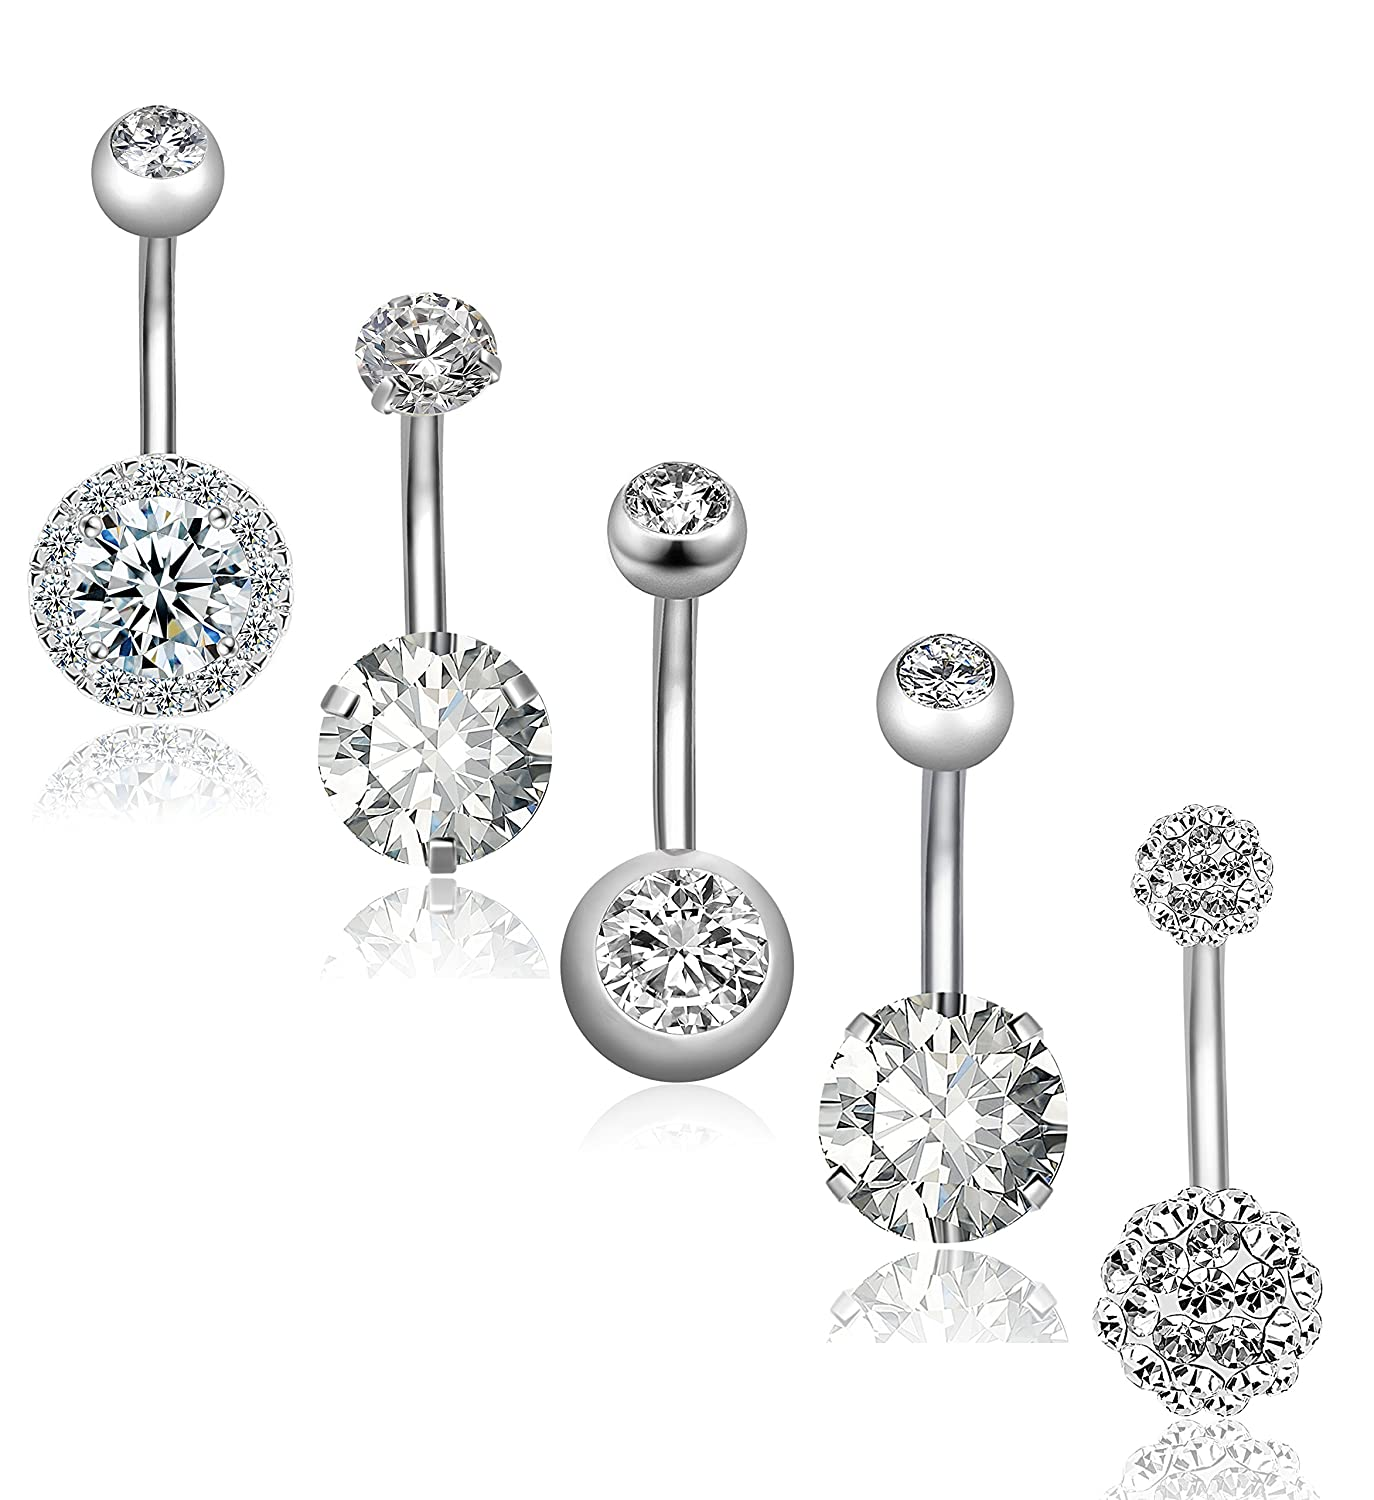 REVOLIA 5Pcs 14G Stainless Steel Belly Button Rings for Women Girls Navel Rings CZ Body Piercing BPR15-S